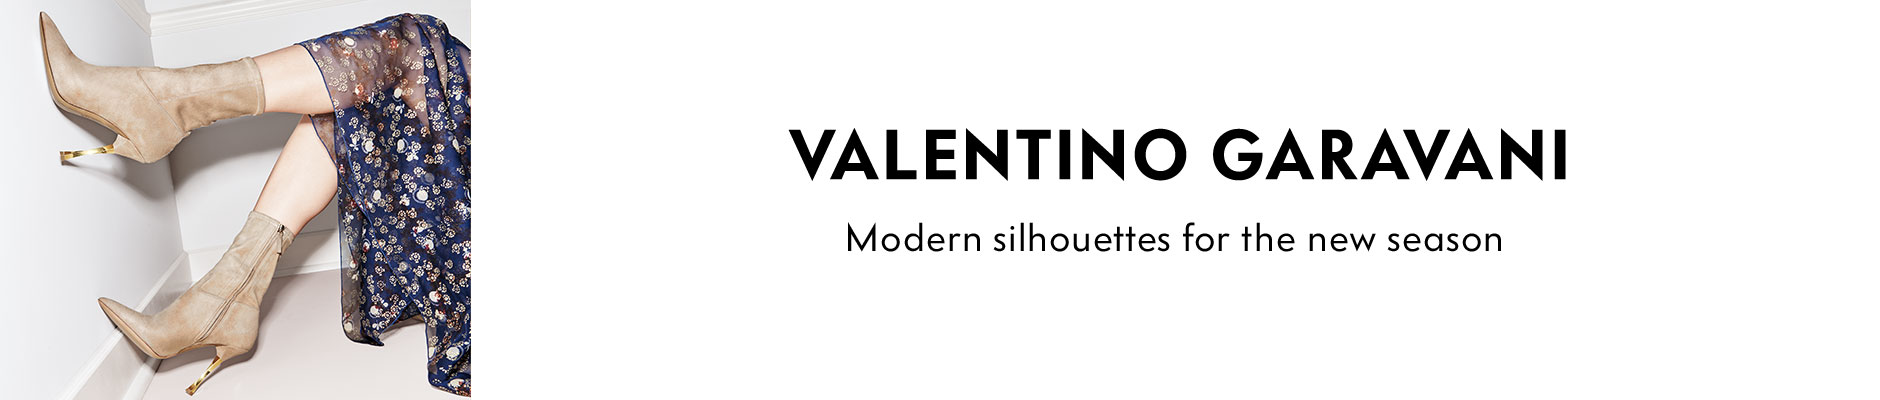 Valentino Garavani - Modern silhouettes for the new season